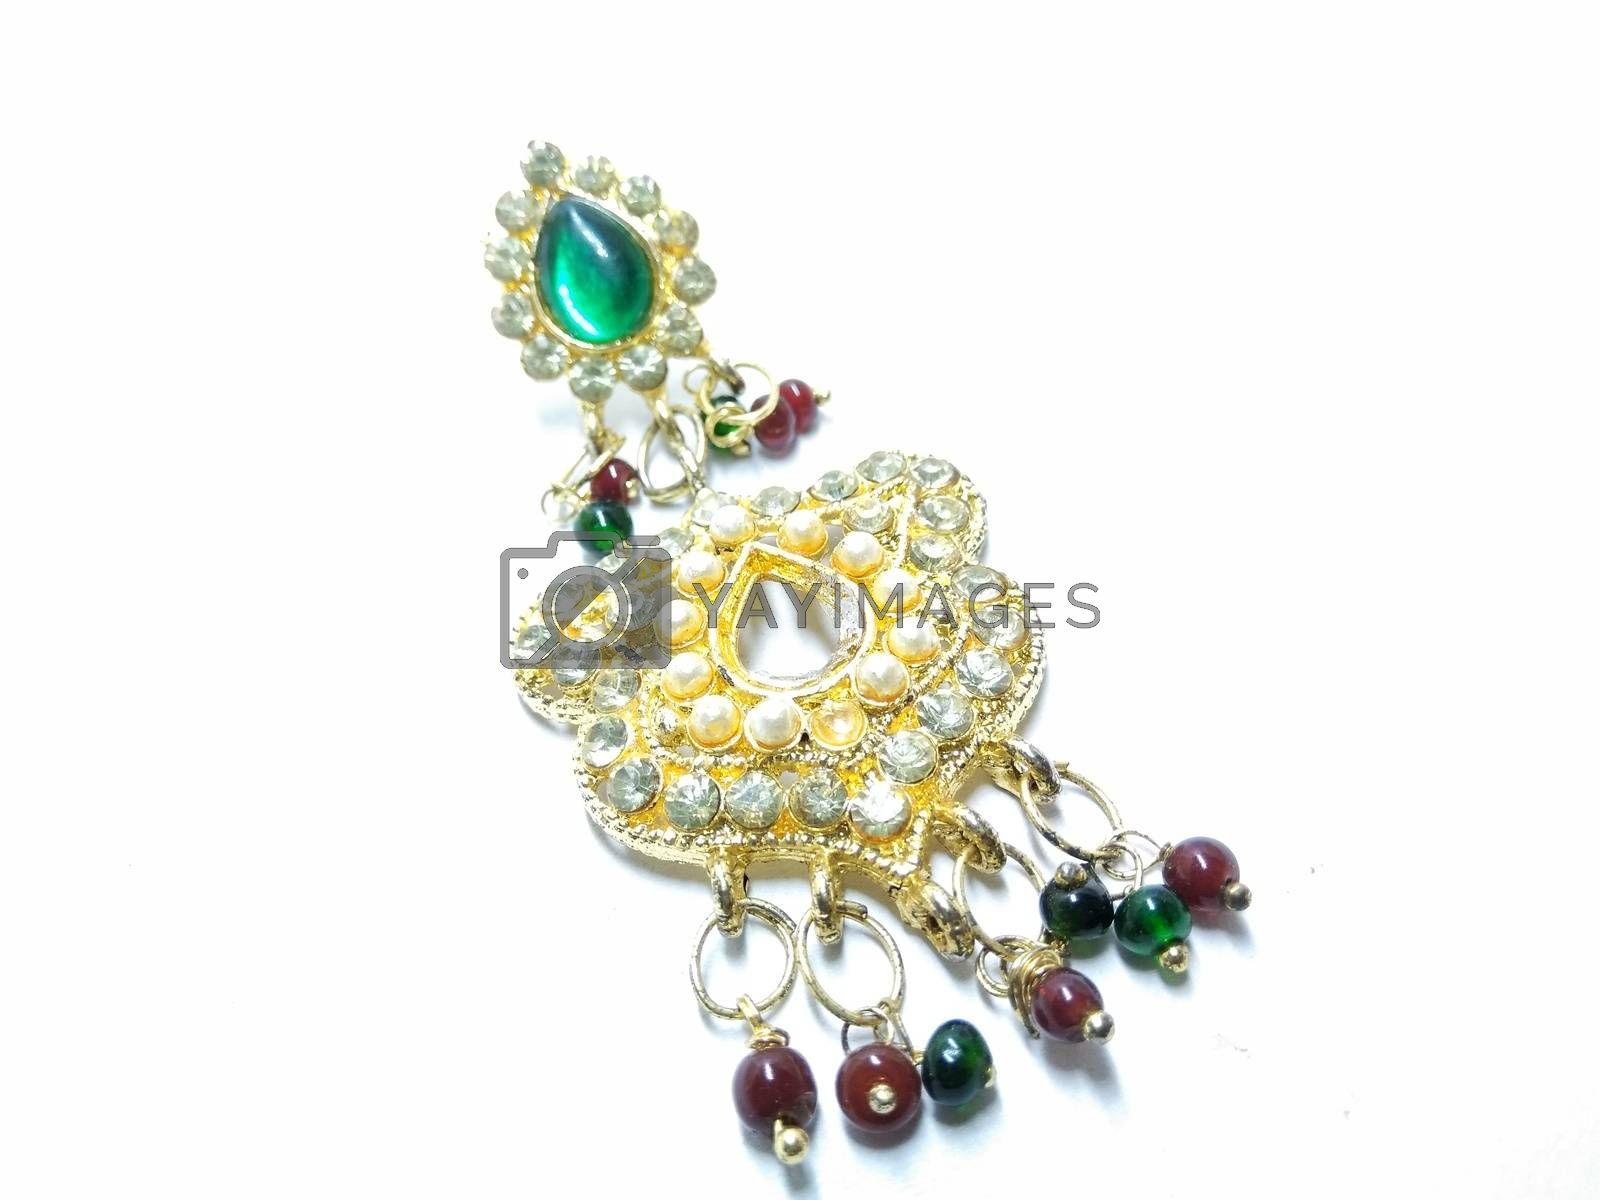 A picture of earrings